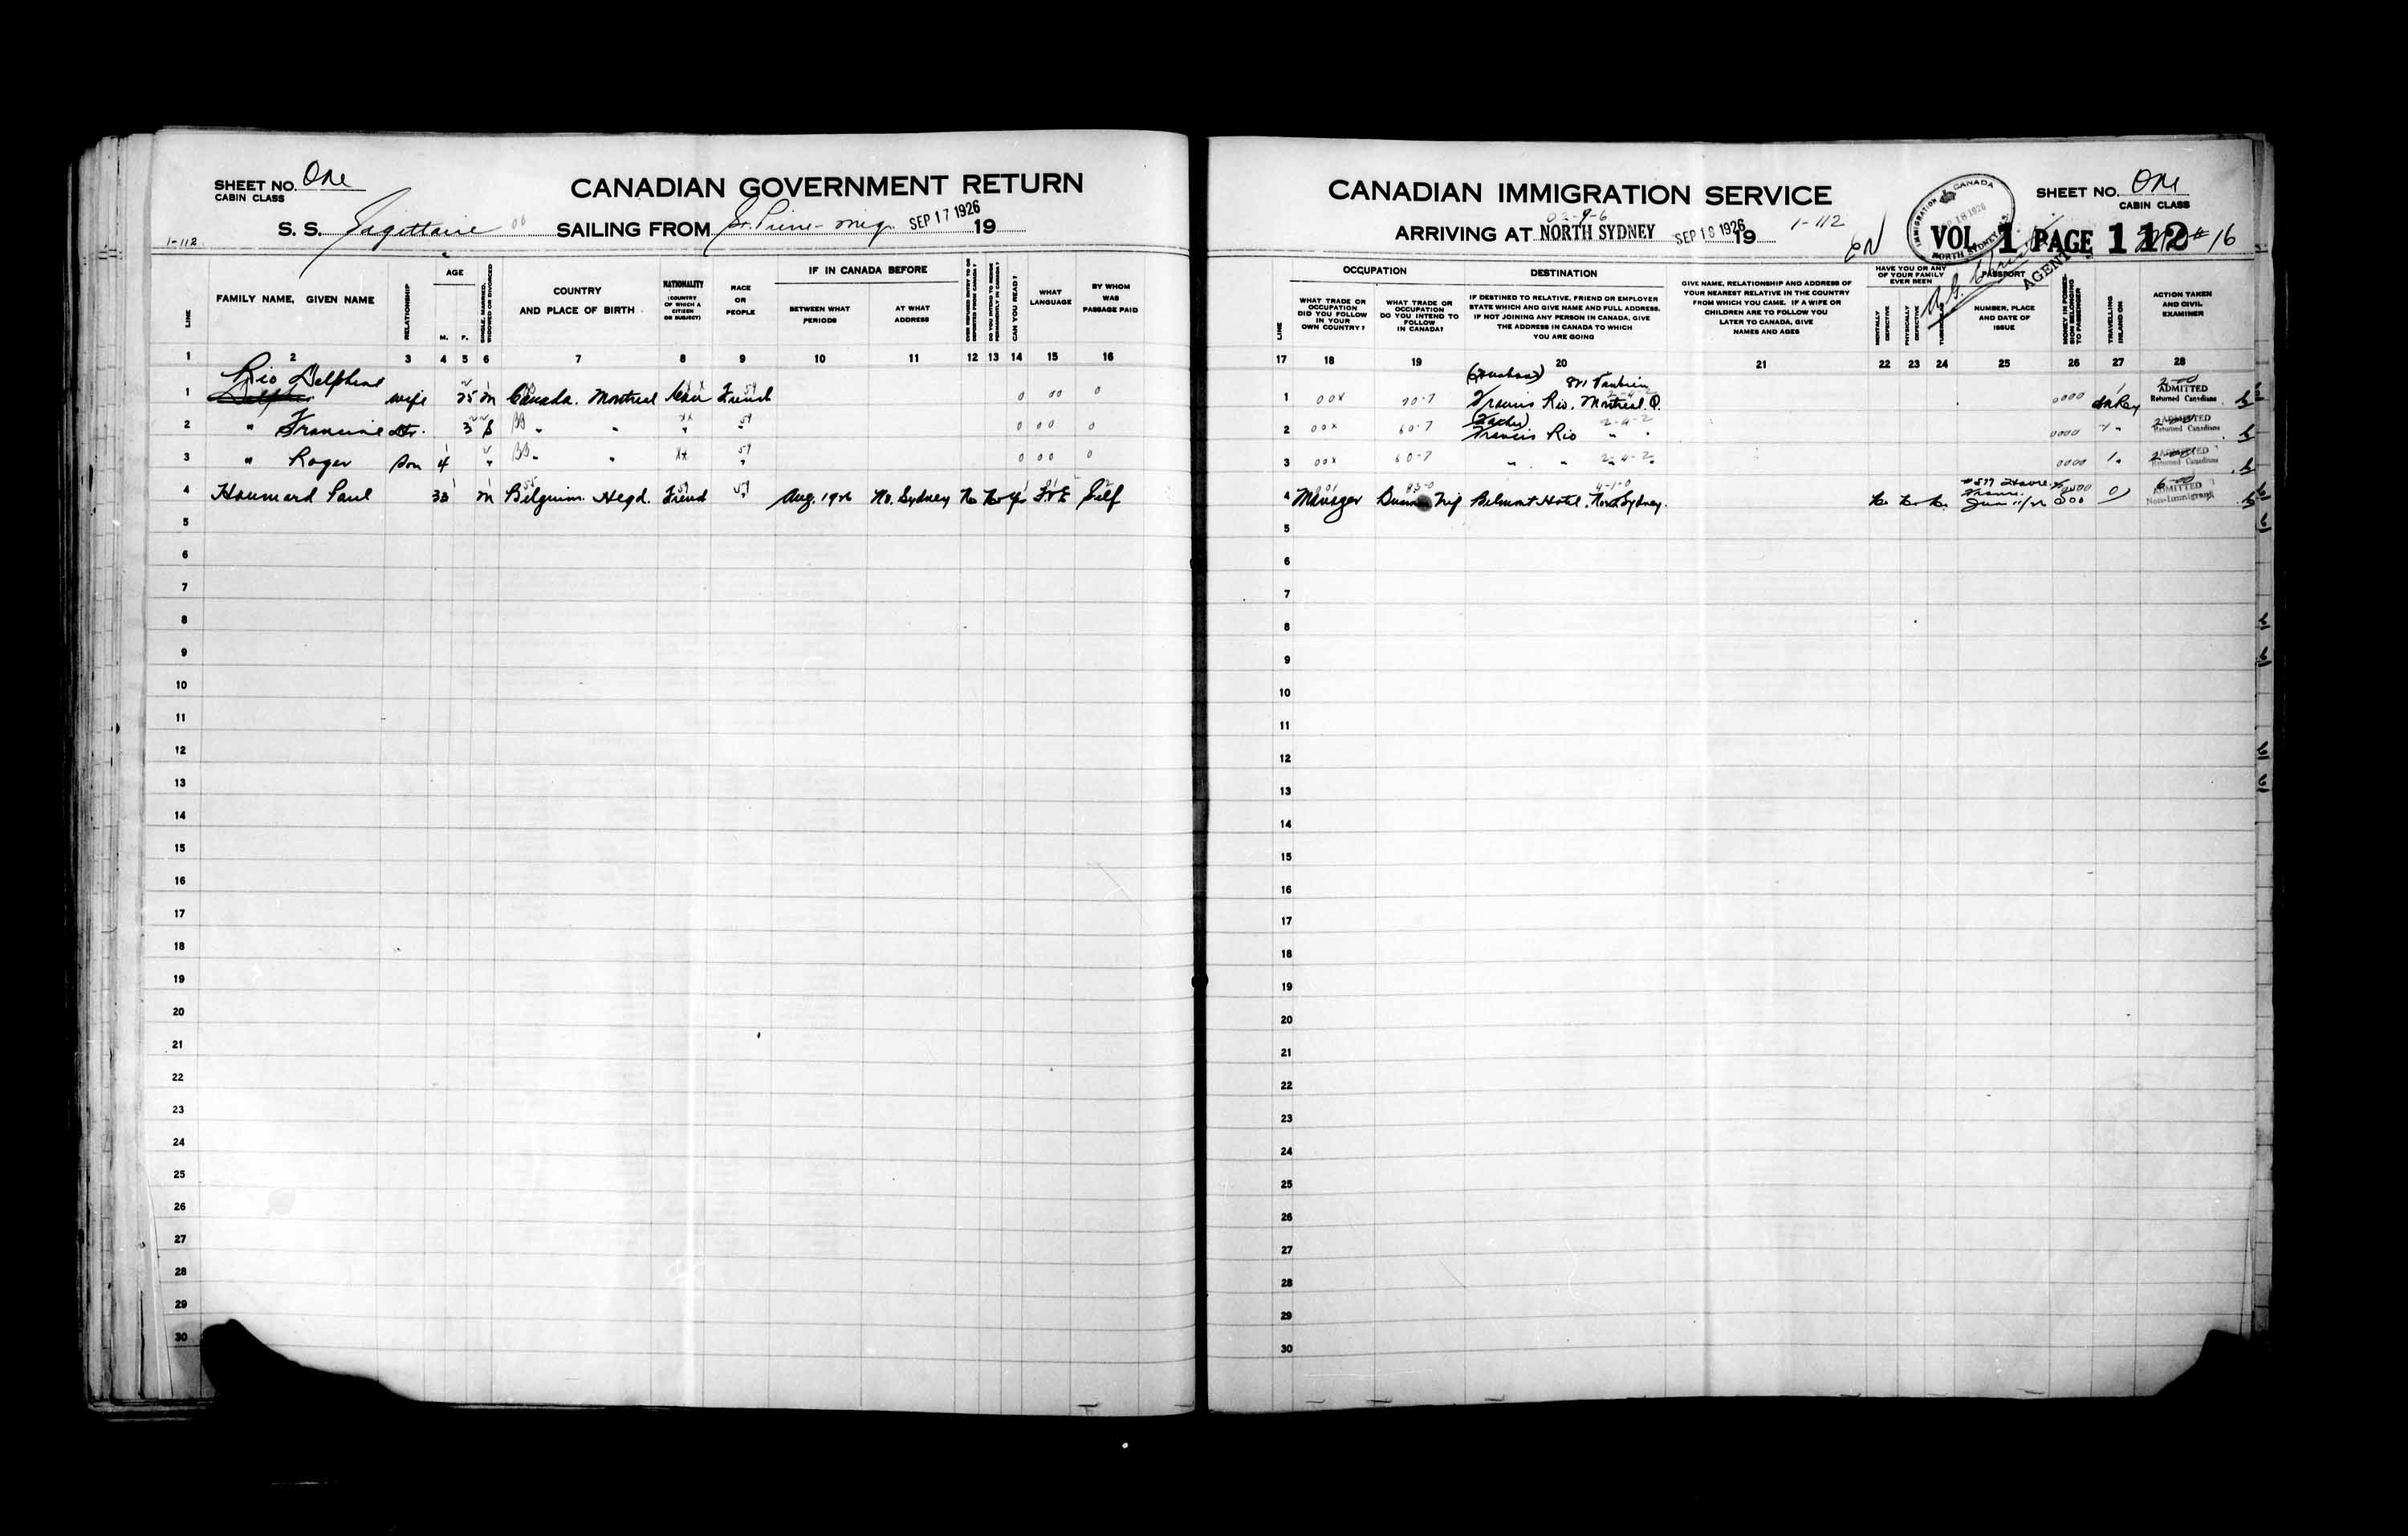 Title: Passenger Lists: North Sydney (1925-1935) - Mikan Number: 161342 - Microform: t-14864